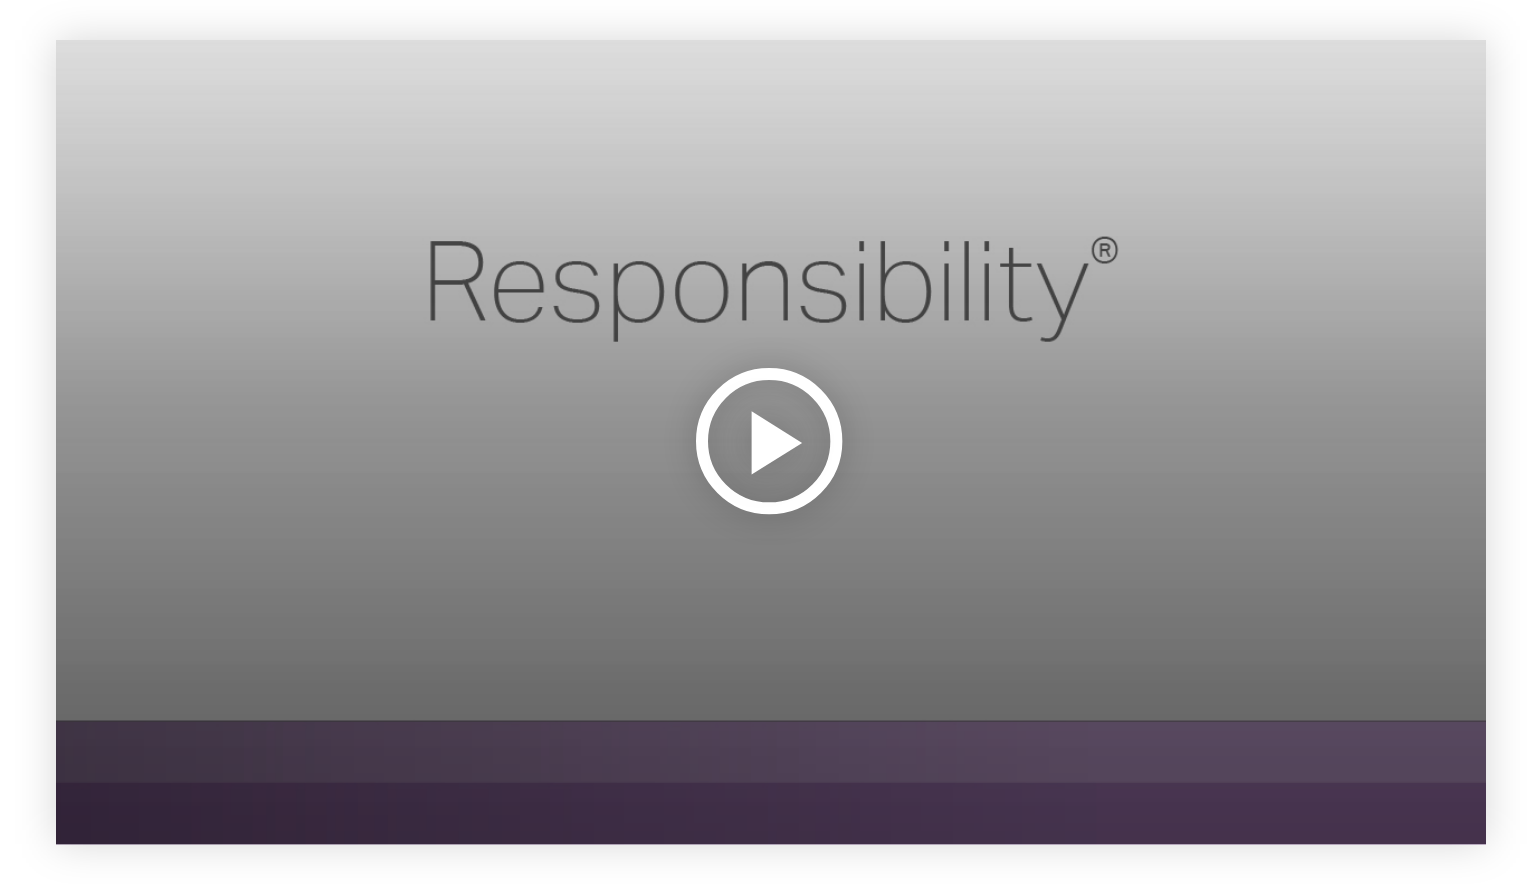 Play video: Responsibility - Learn more about your innate talents from Gallup's Clifton StrengthsFinder!